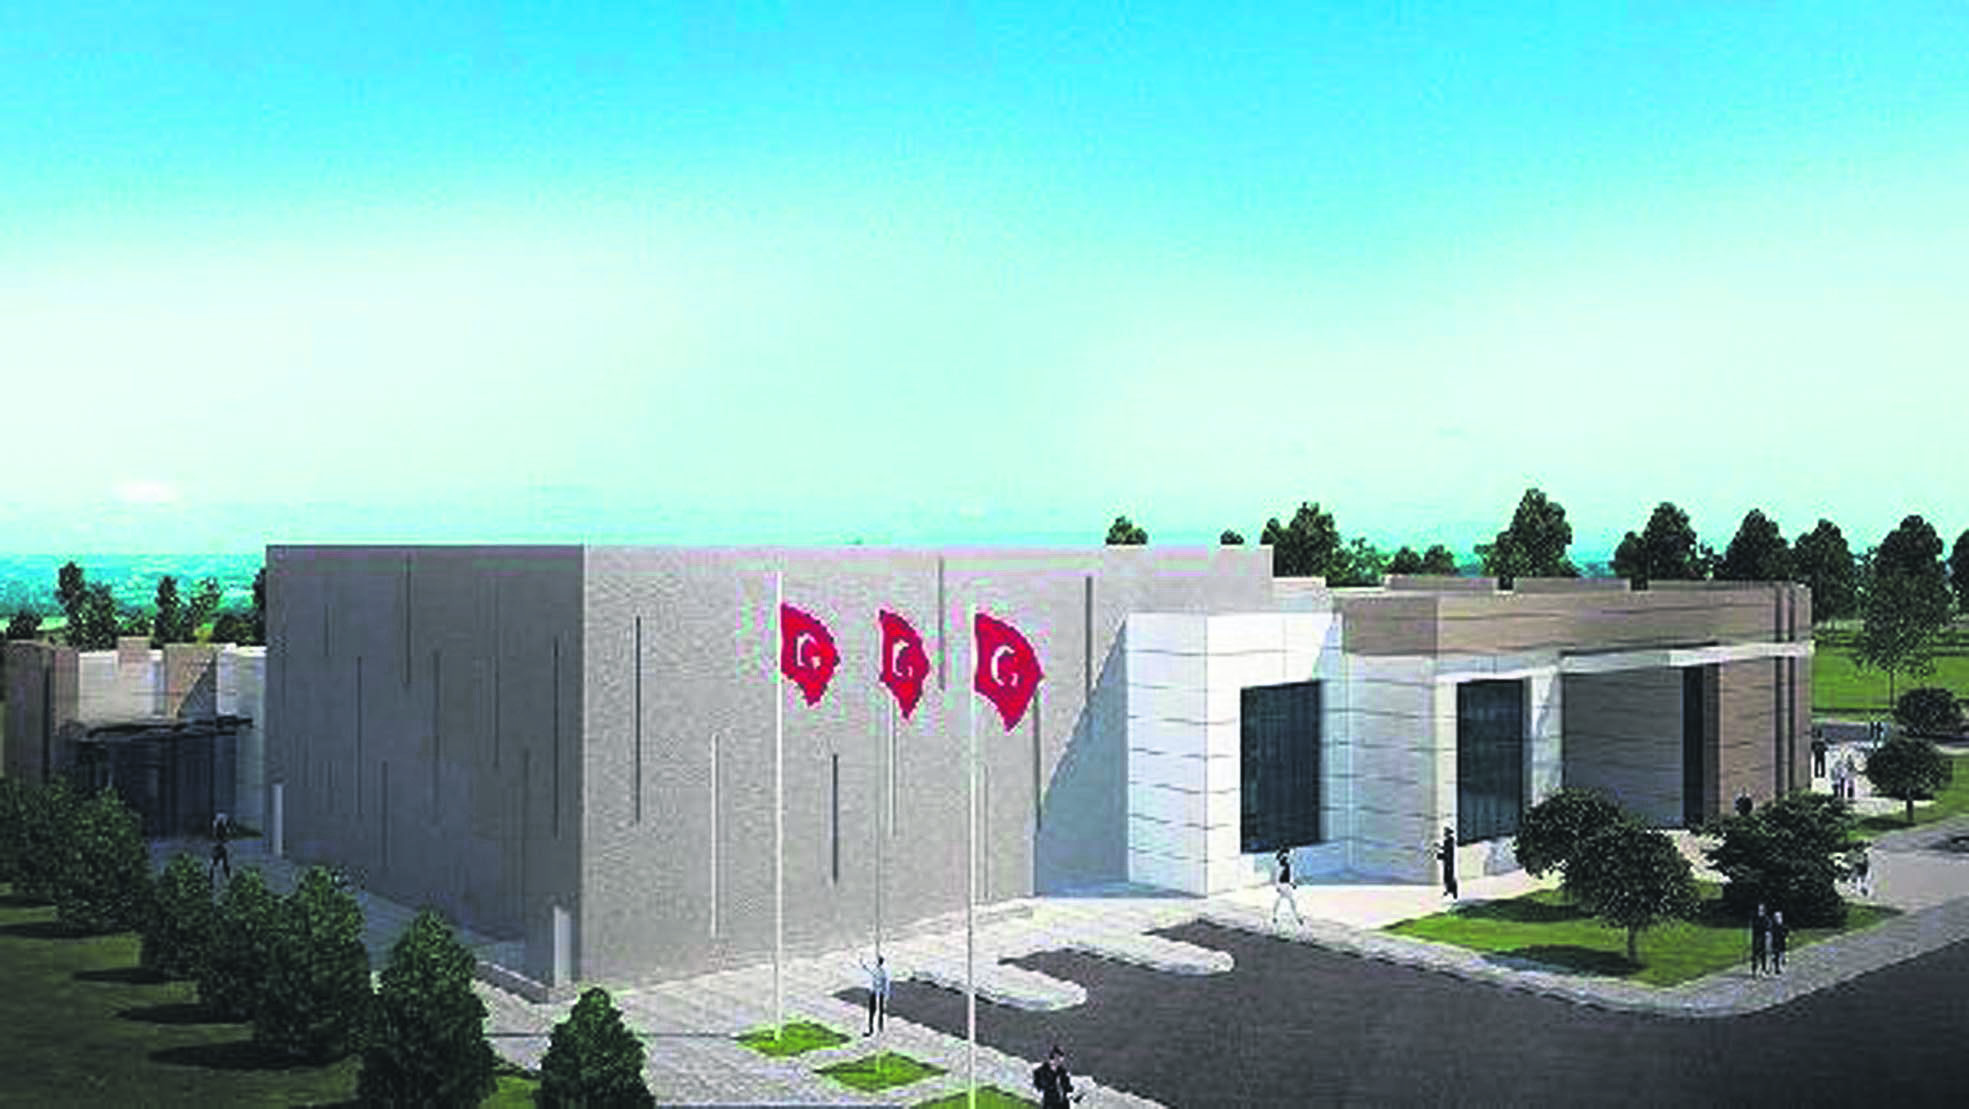 A model of the July 15 Martyrs and Democracy Museum, currently being built in Kahramankazan, Ankara.